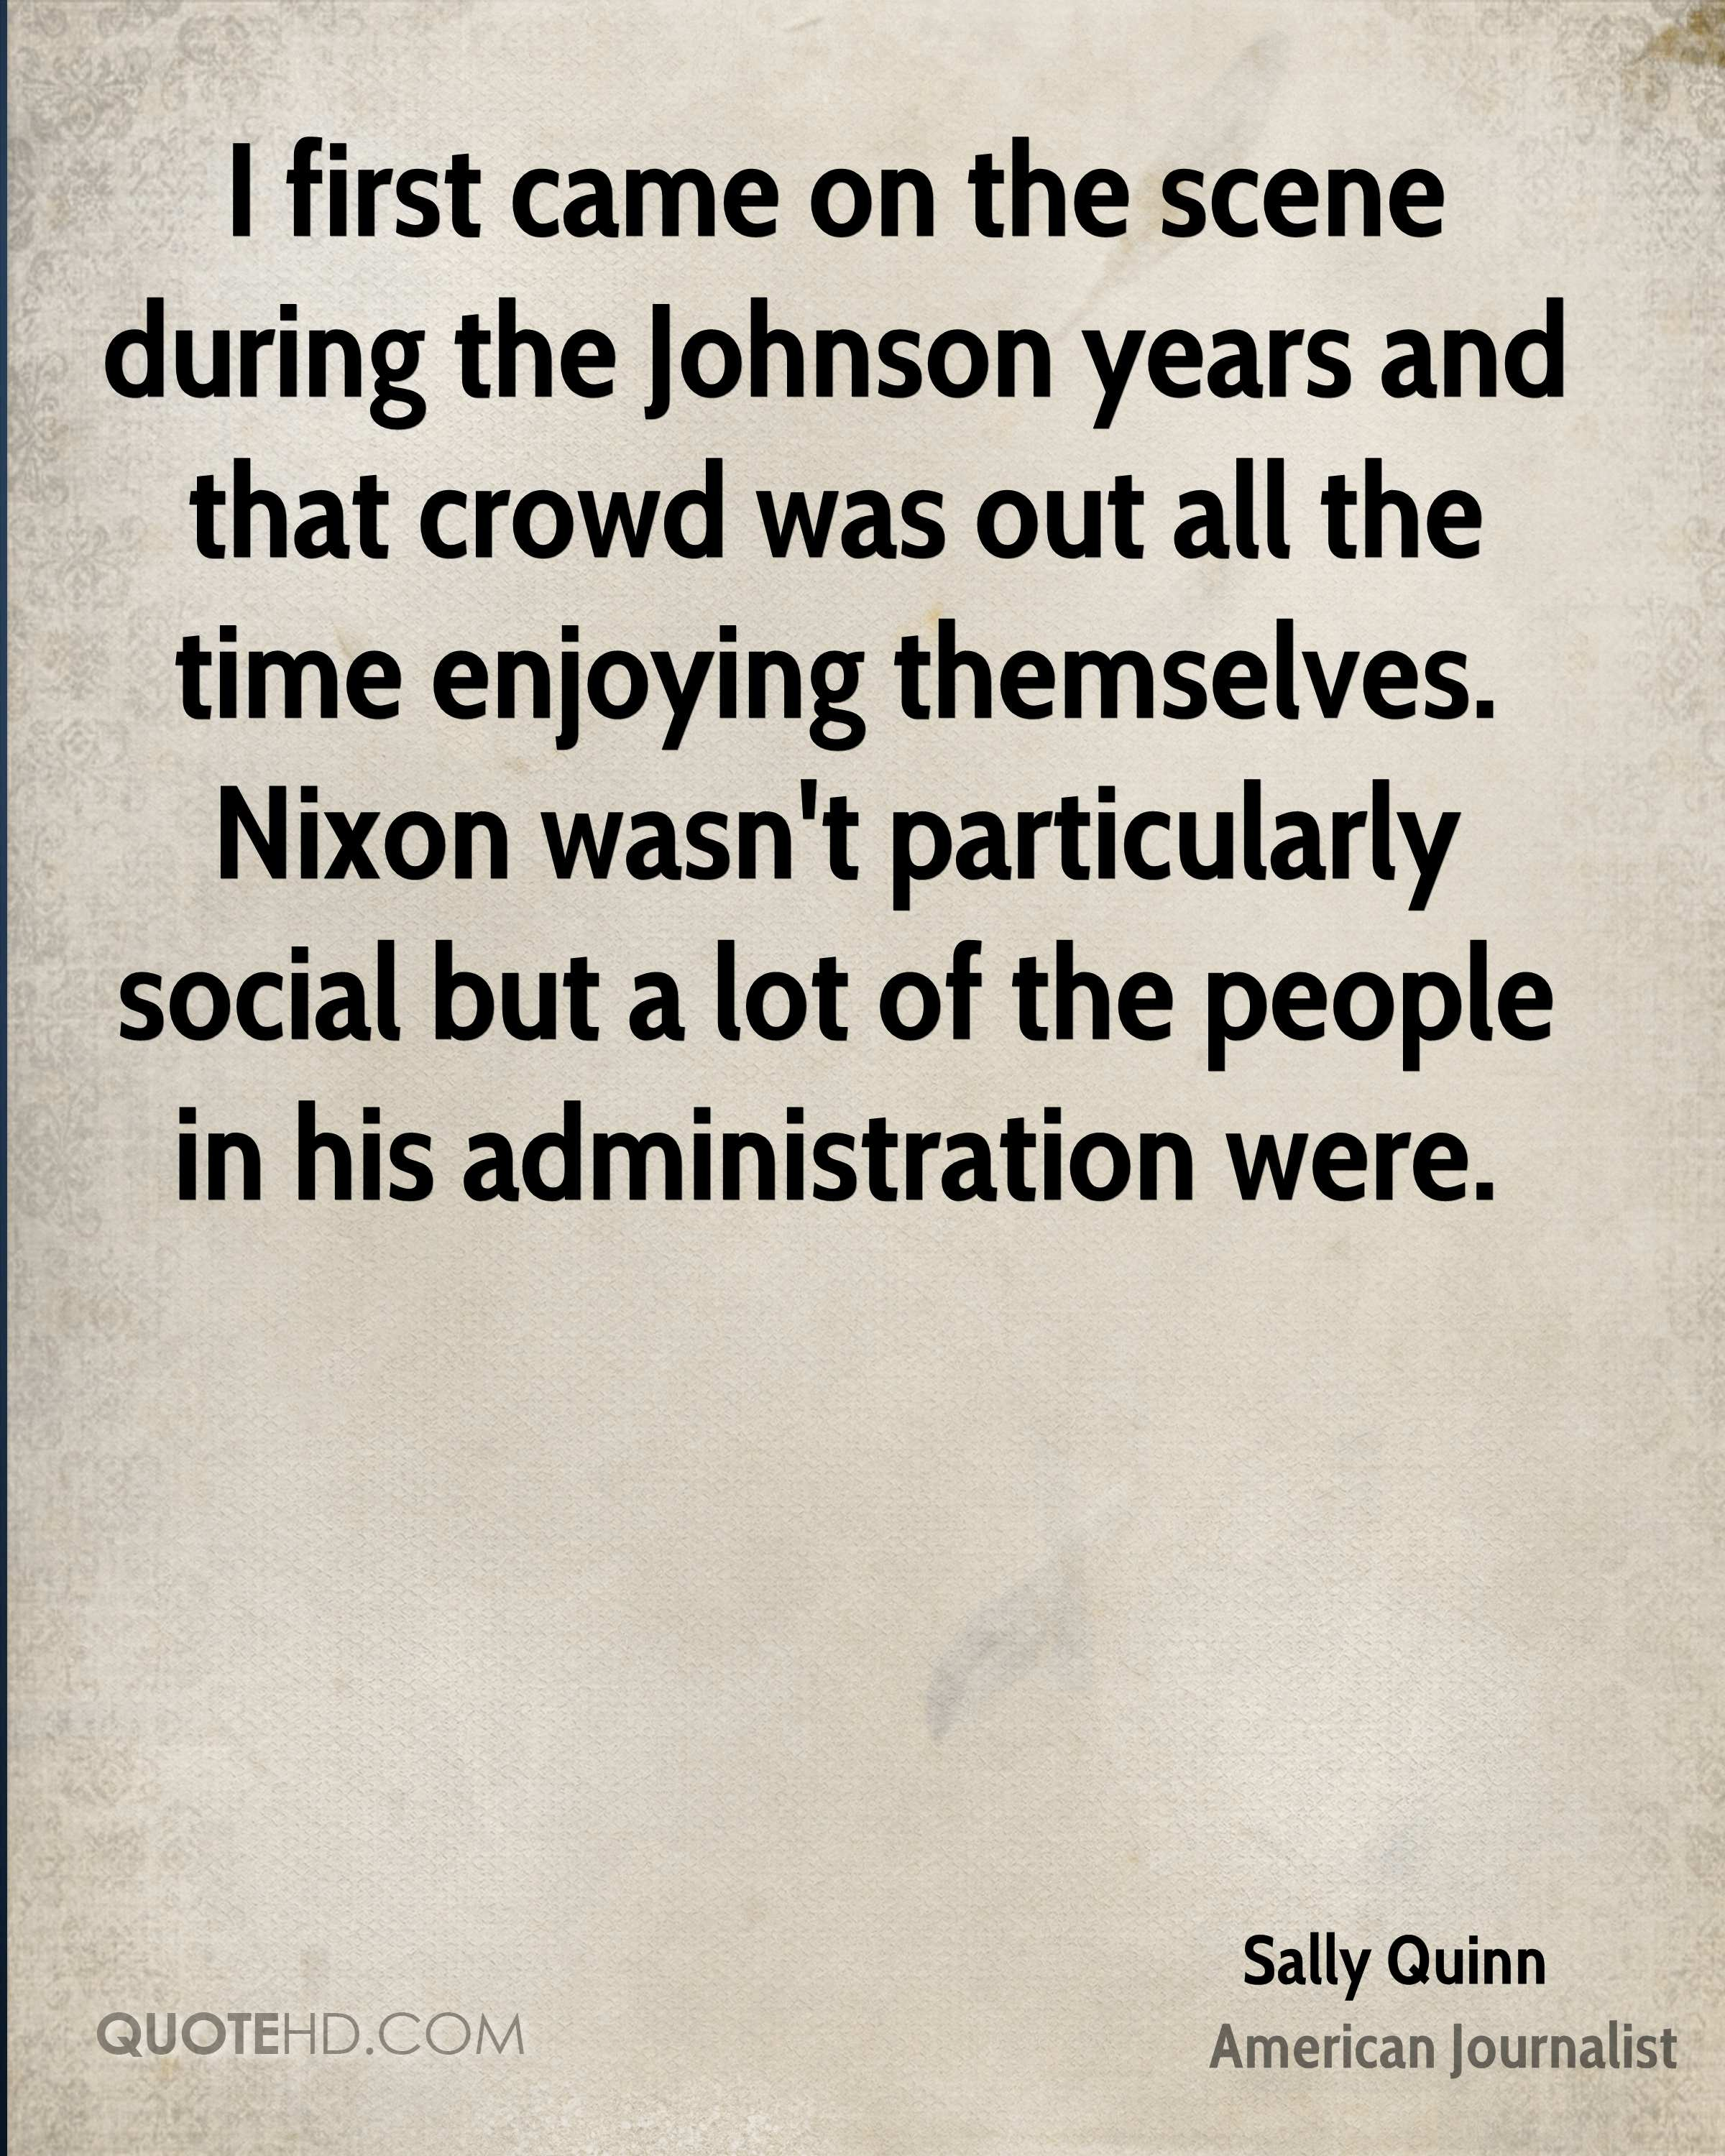 I first came on the scene during the Johnson years and that crowd was out all the time enjoying themselves. Nixon wasn't particularly social but a lot of the people in his administration were.